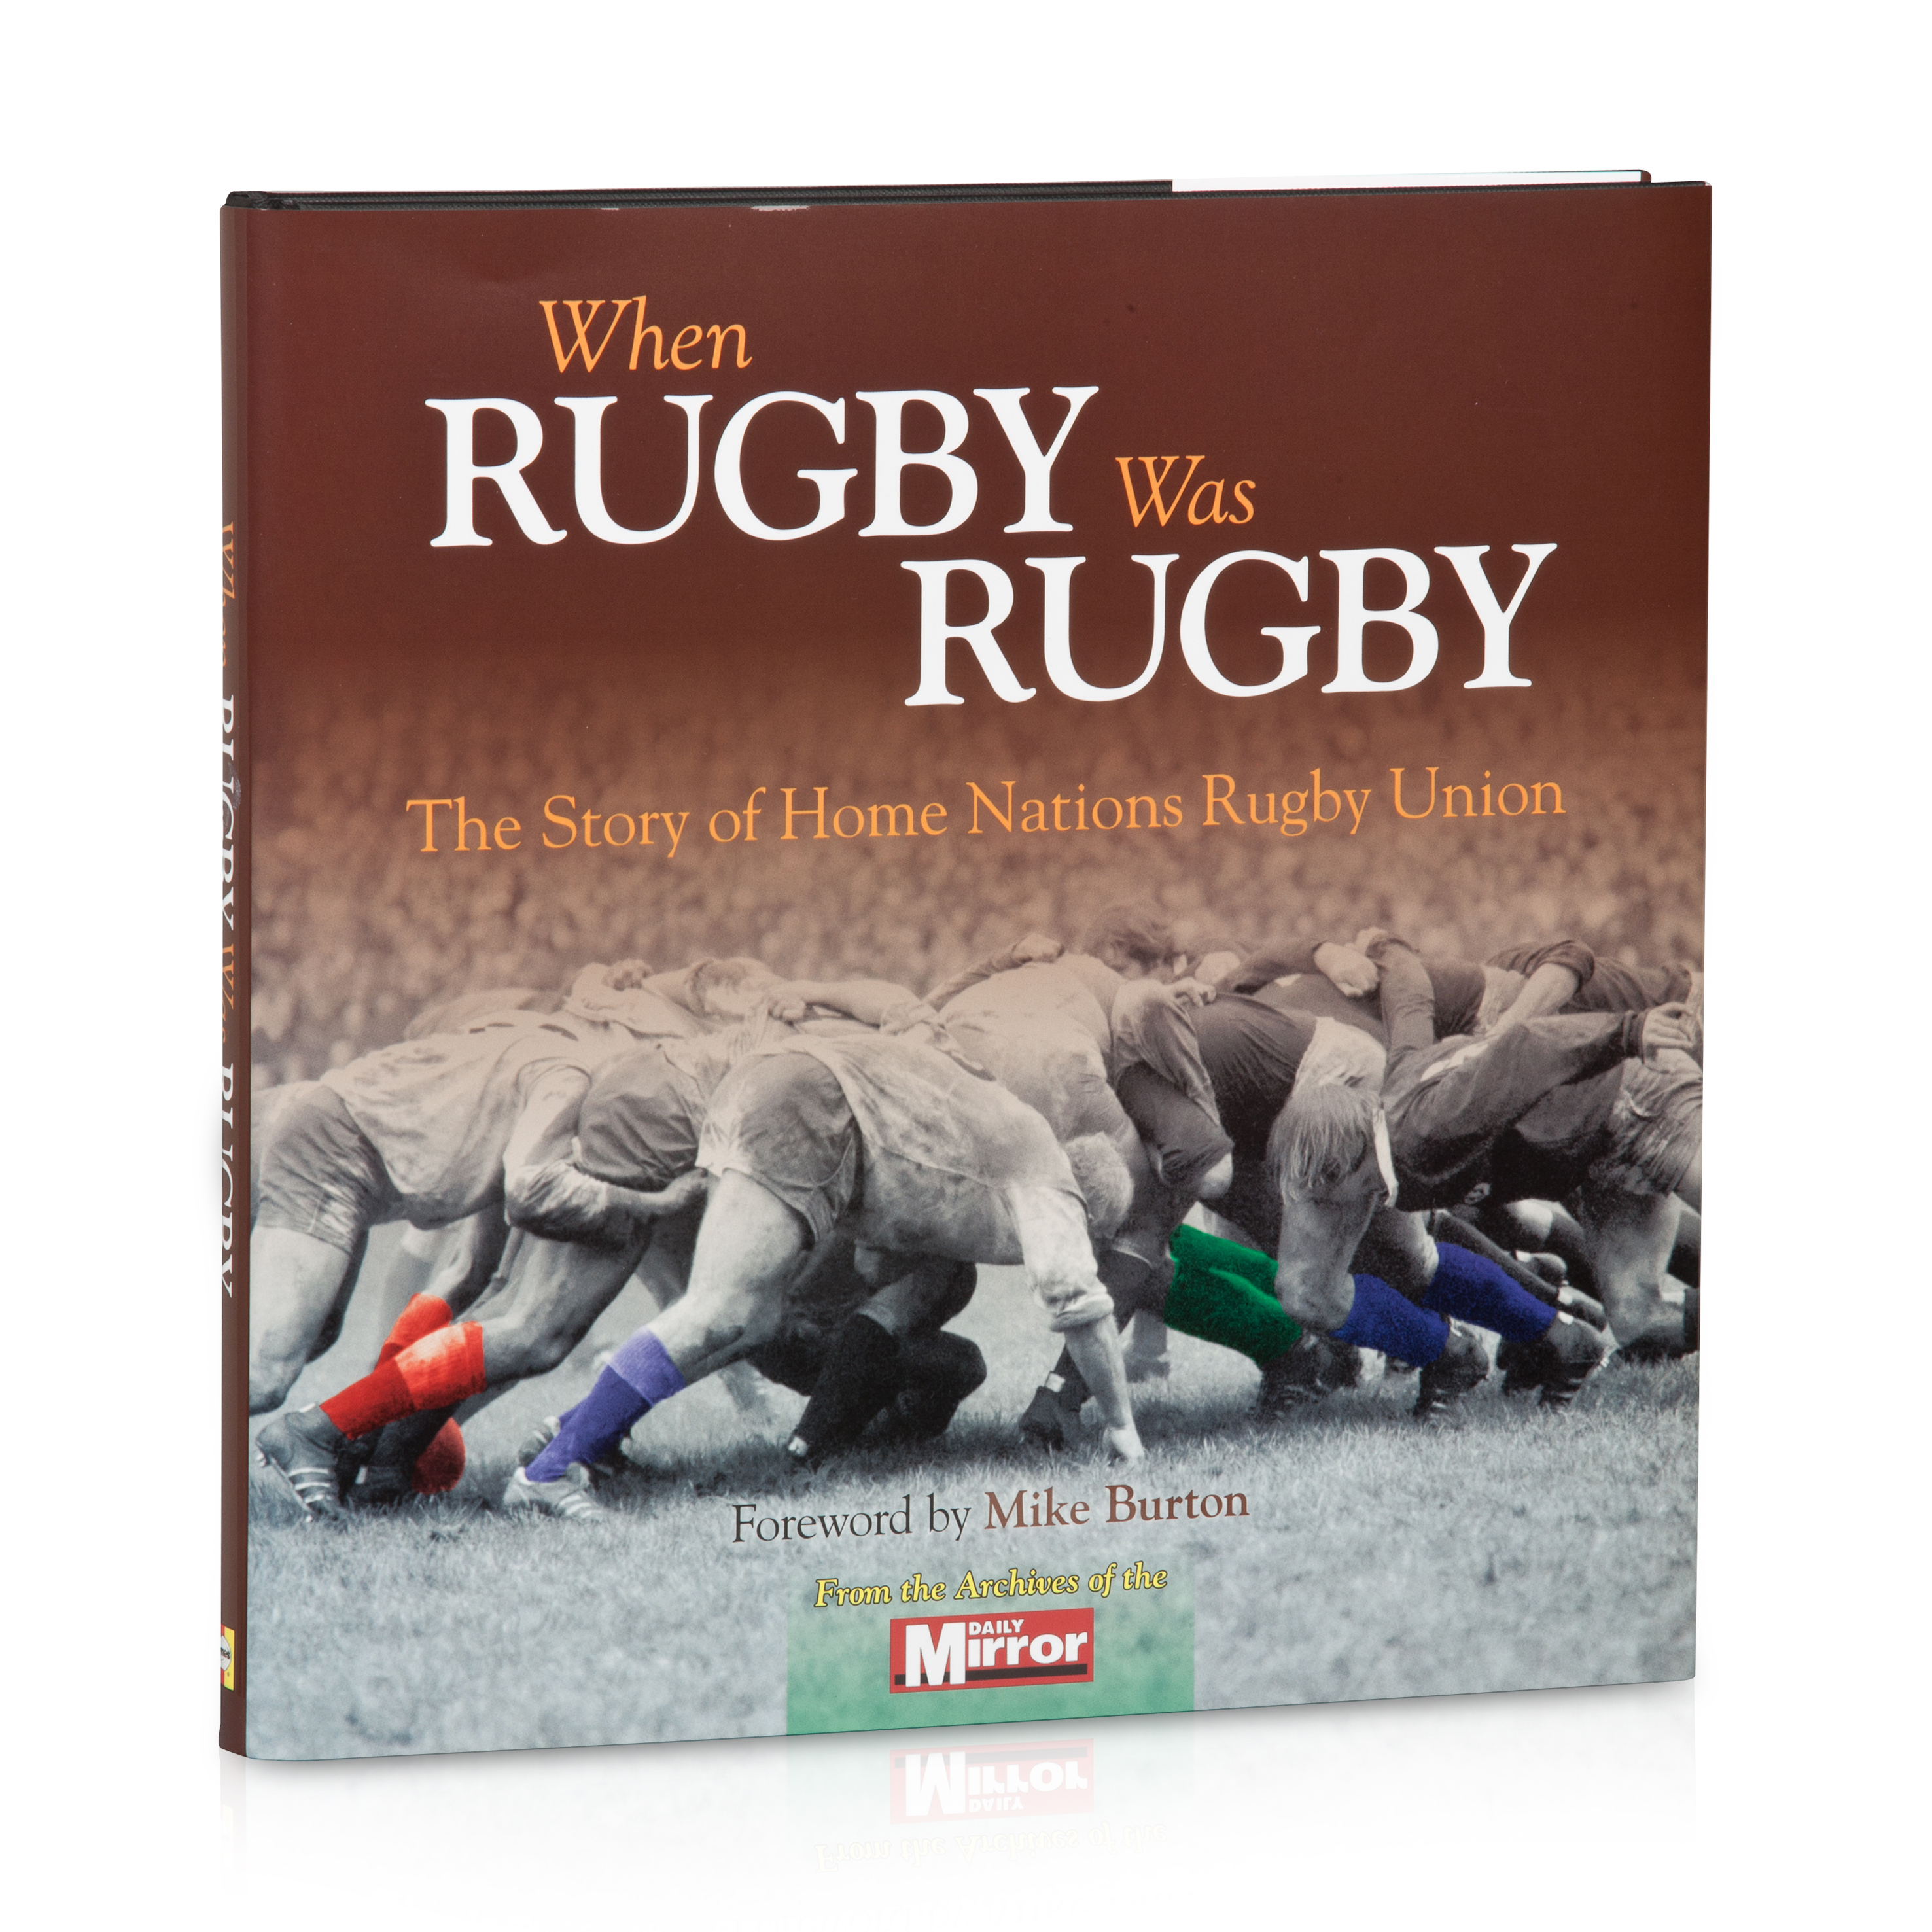 When Rugby Was Rugby - The Home Nations